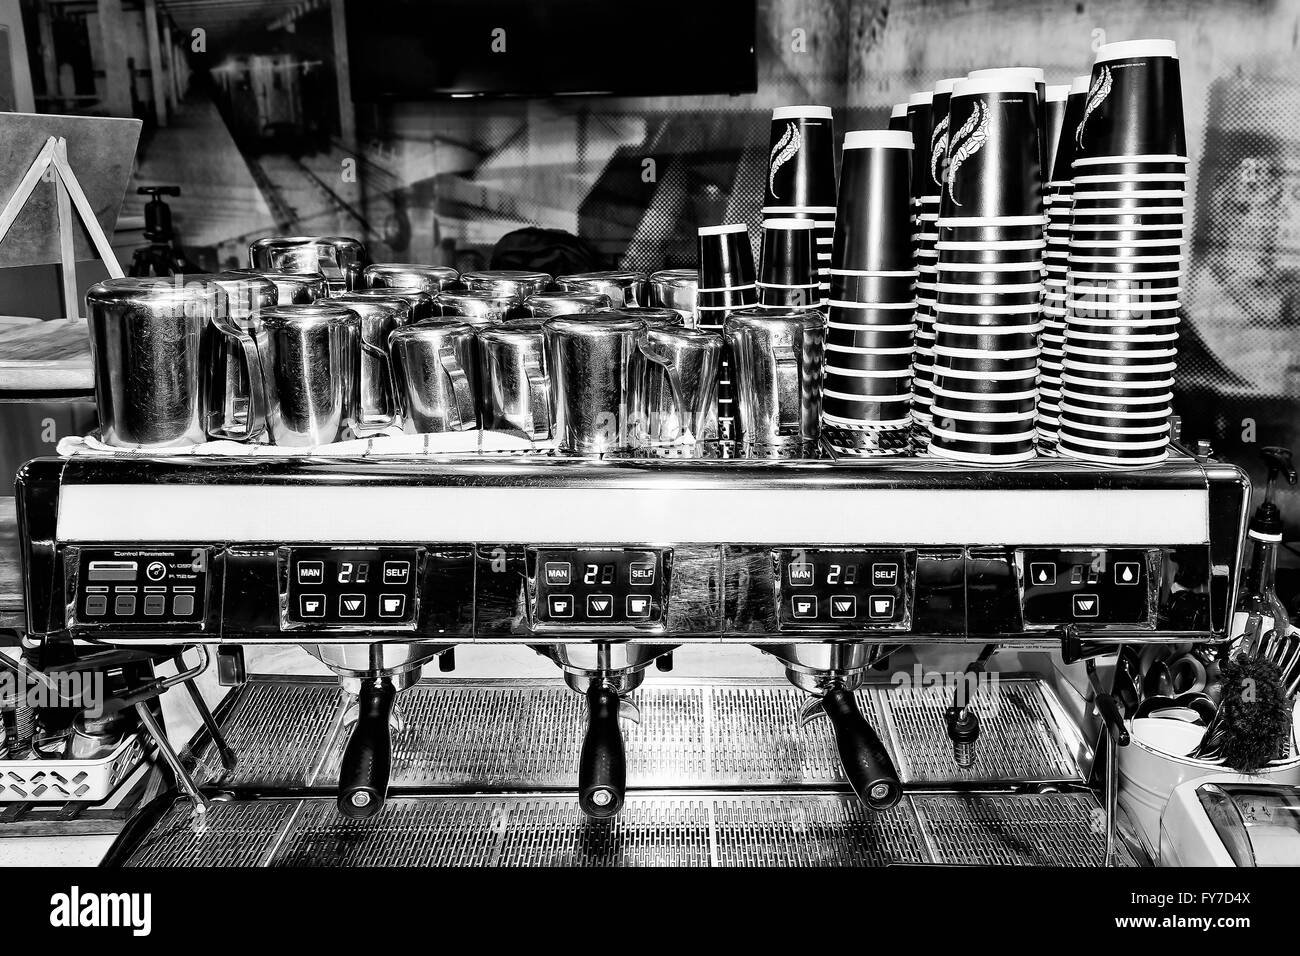 Black white image of industrial large scale barista coffee machine in a cafe ready to serve customers with piles - Stock Image